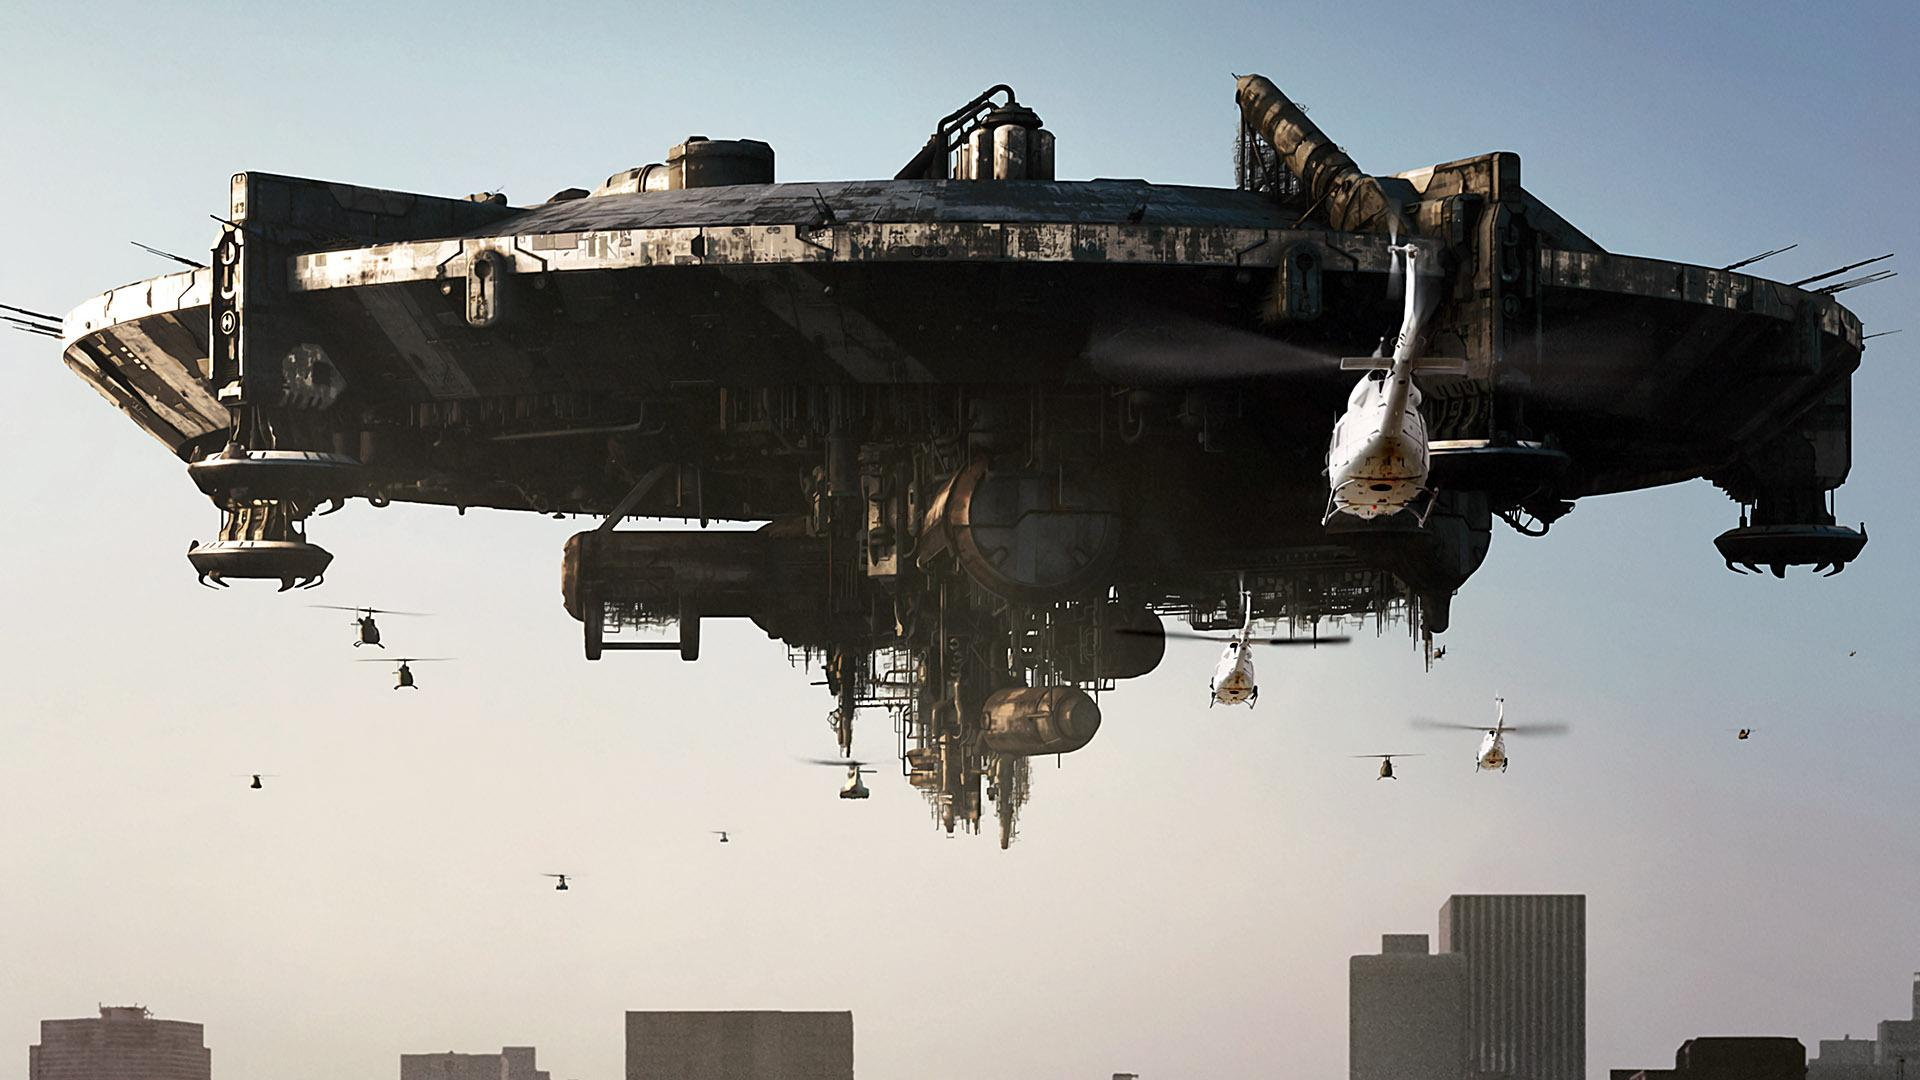 district 9 computer wallpapers - photo #6